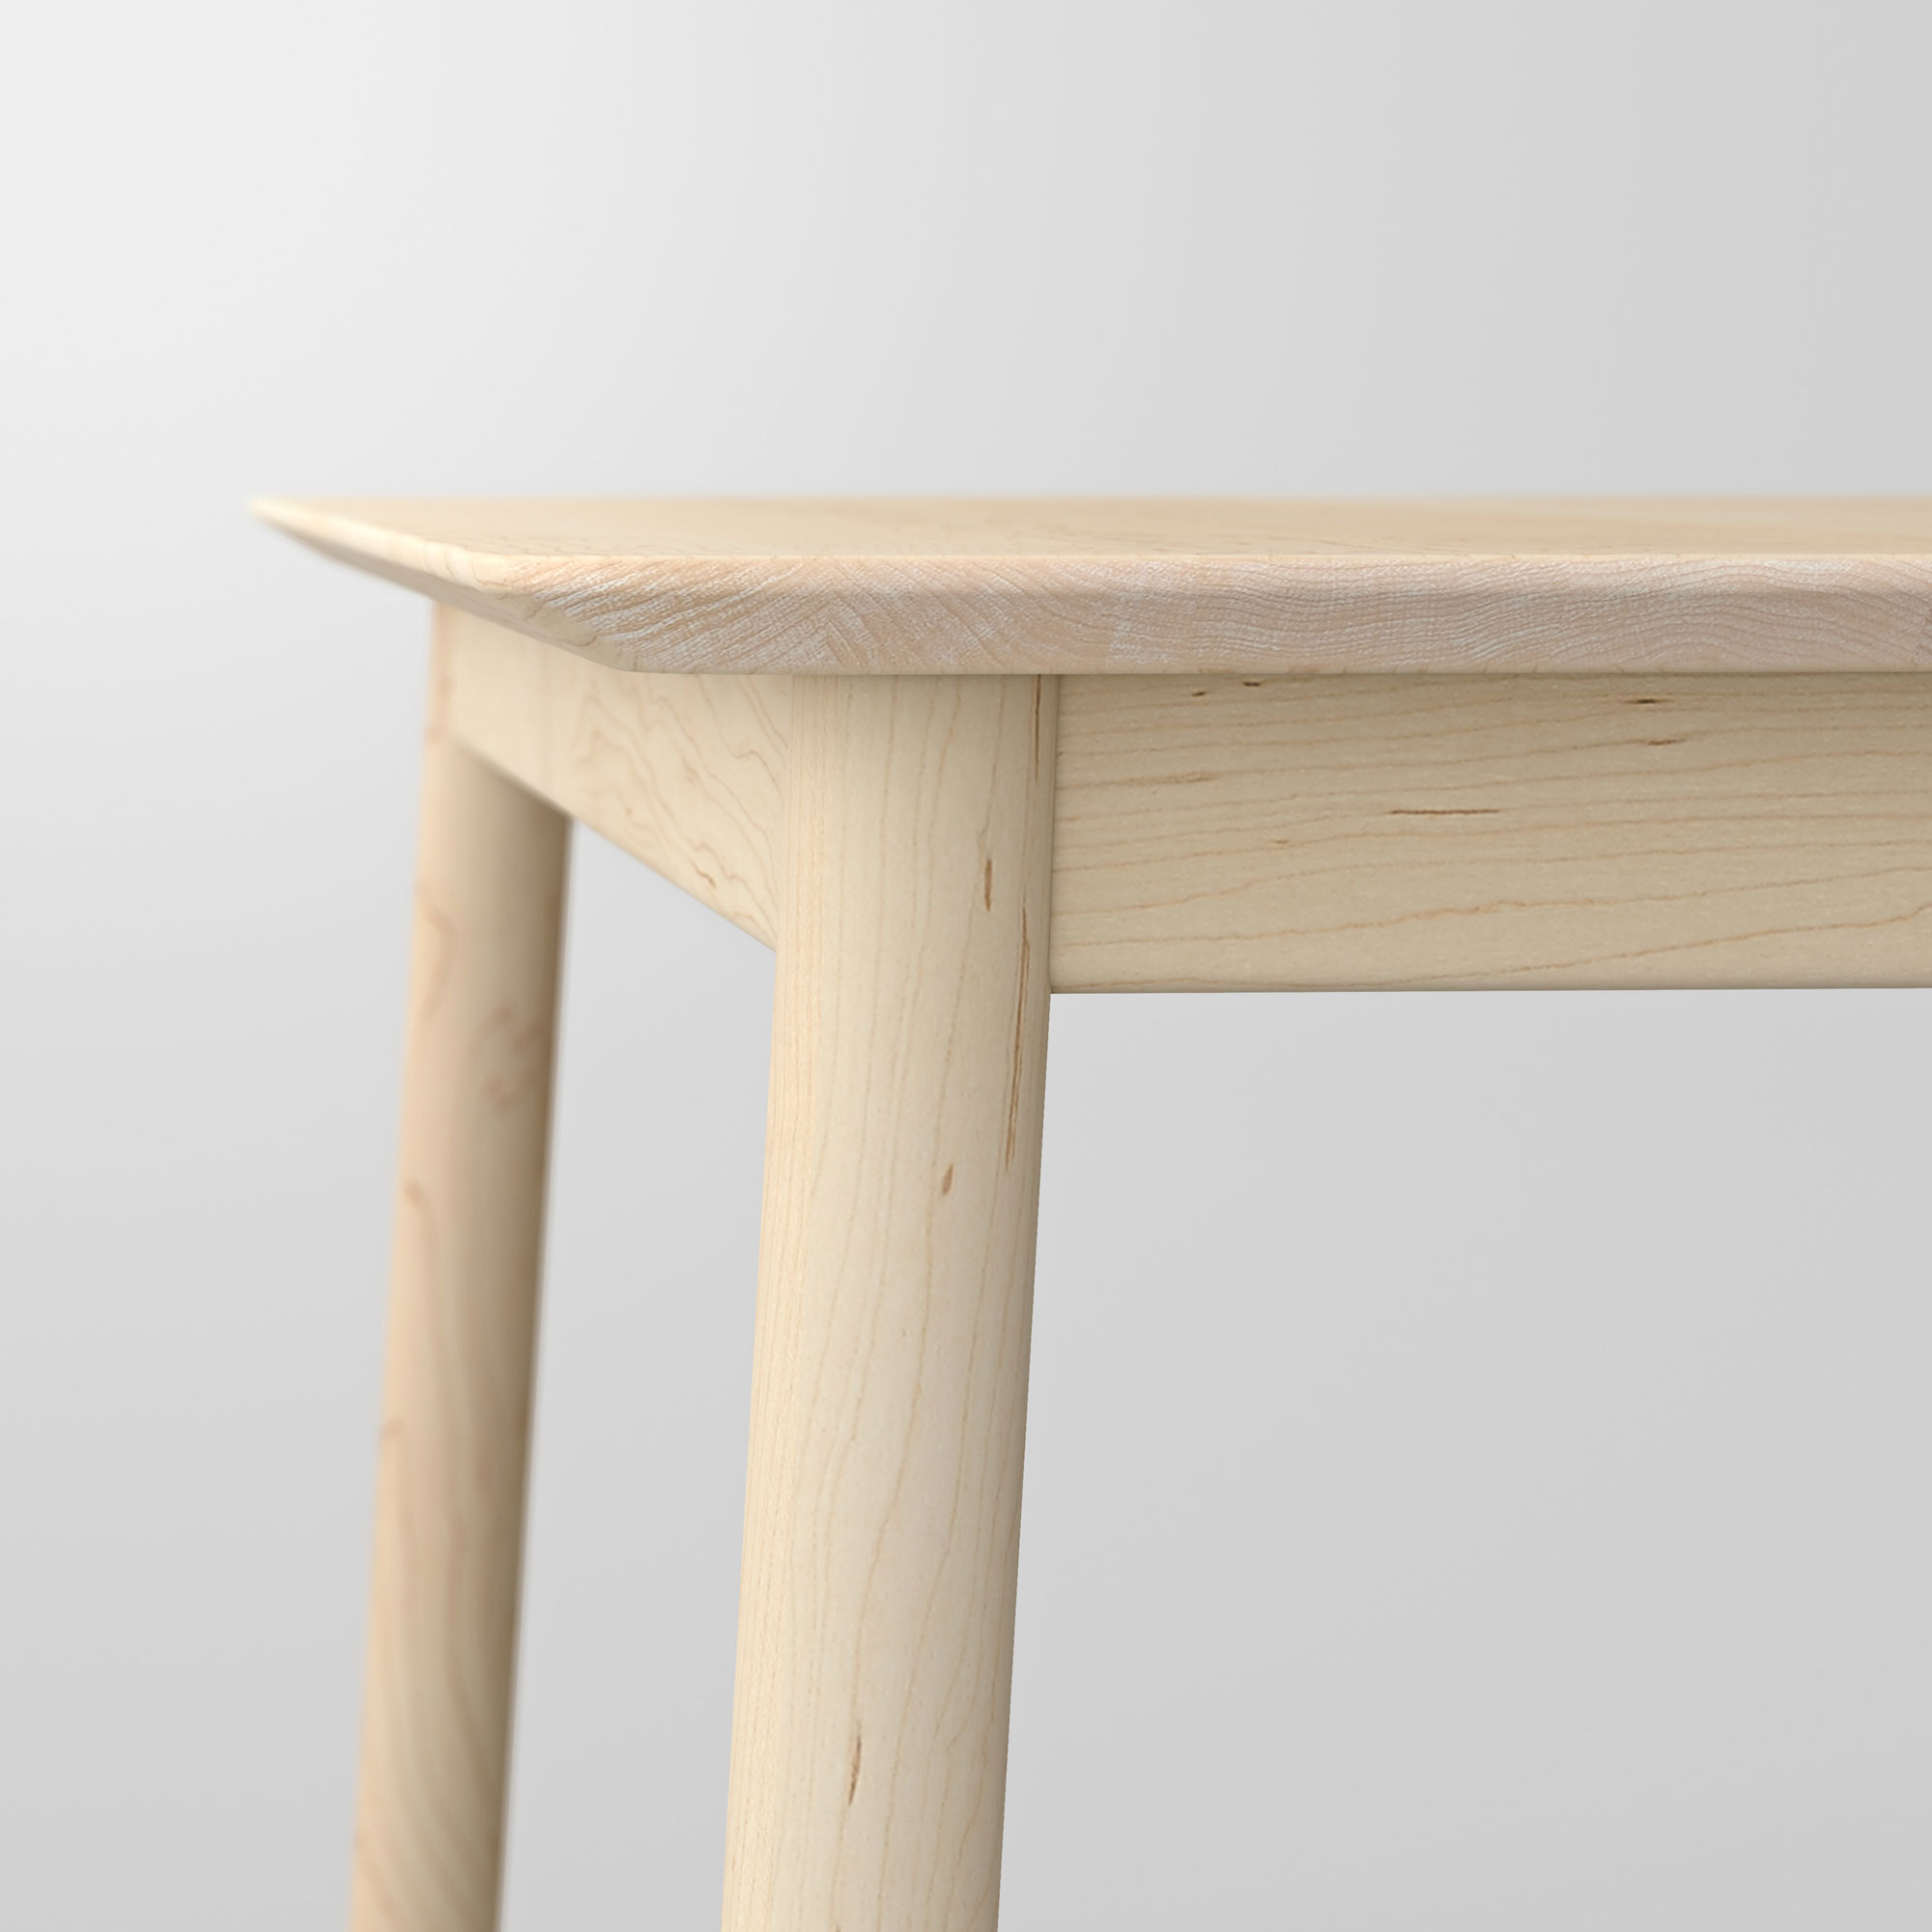 Style Wood Table LOCA cam4 custom made in solid wood by vitamin design